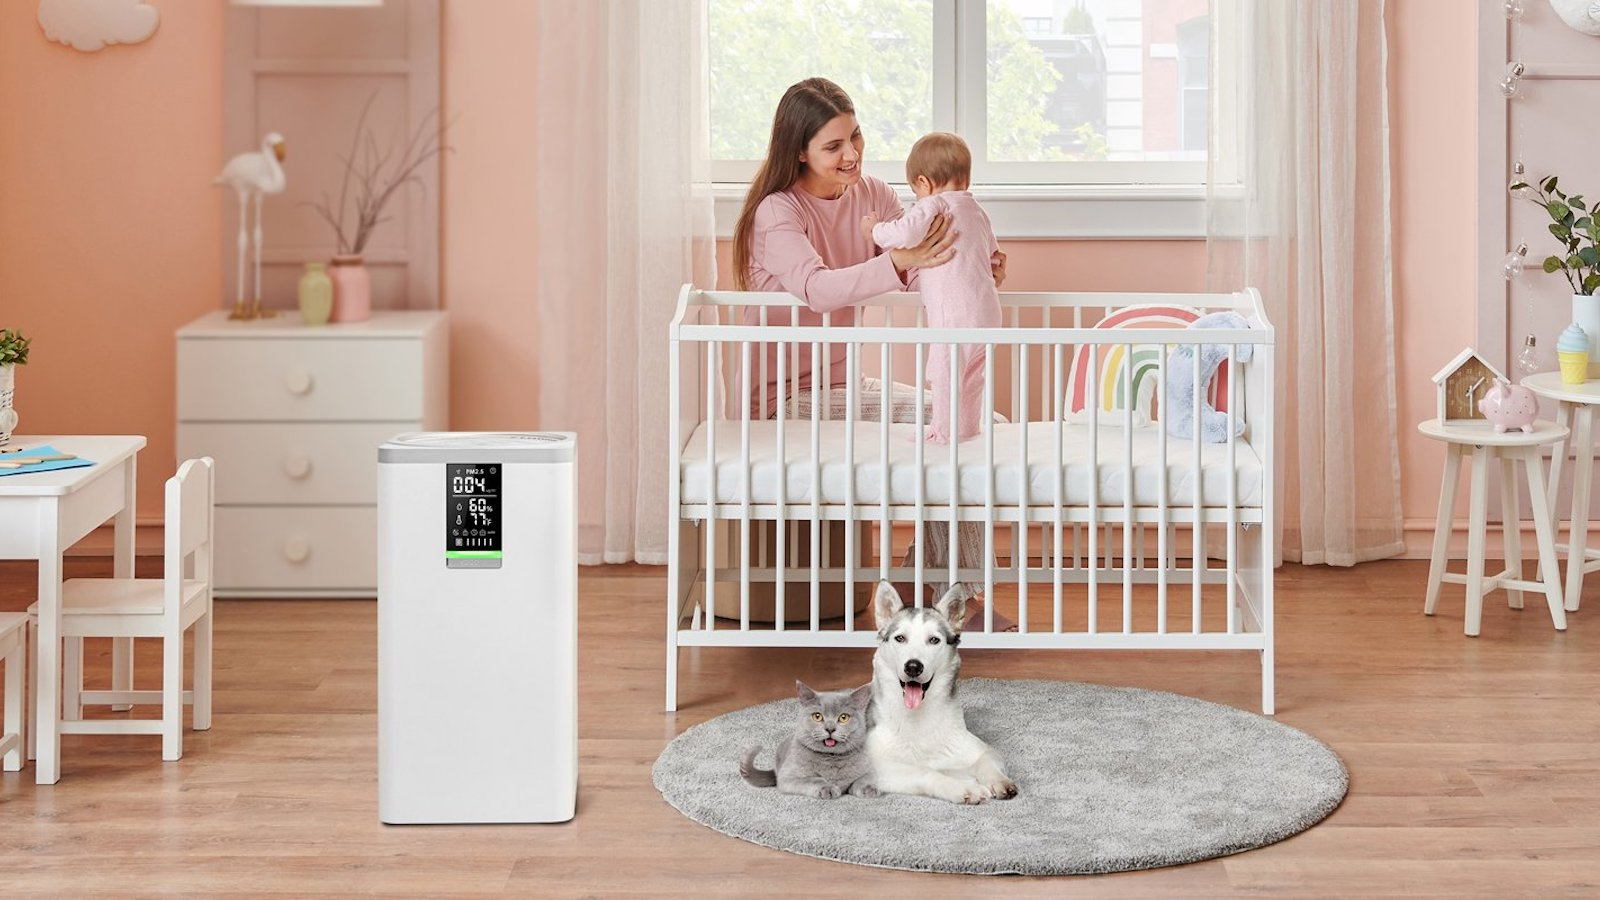 VOCOlinc Smart Air Purifier VAP1 removes allergens, pollen, and fine dust from your home